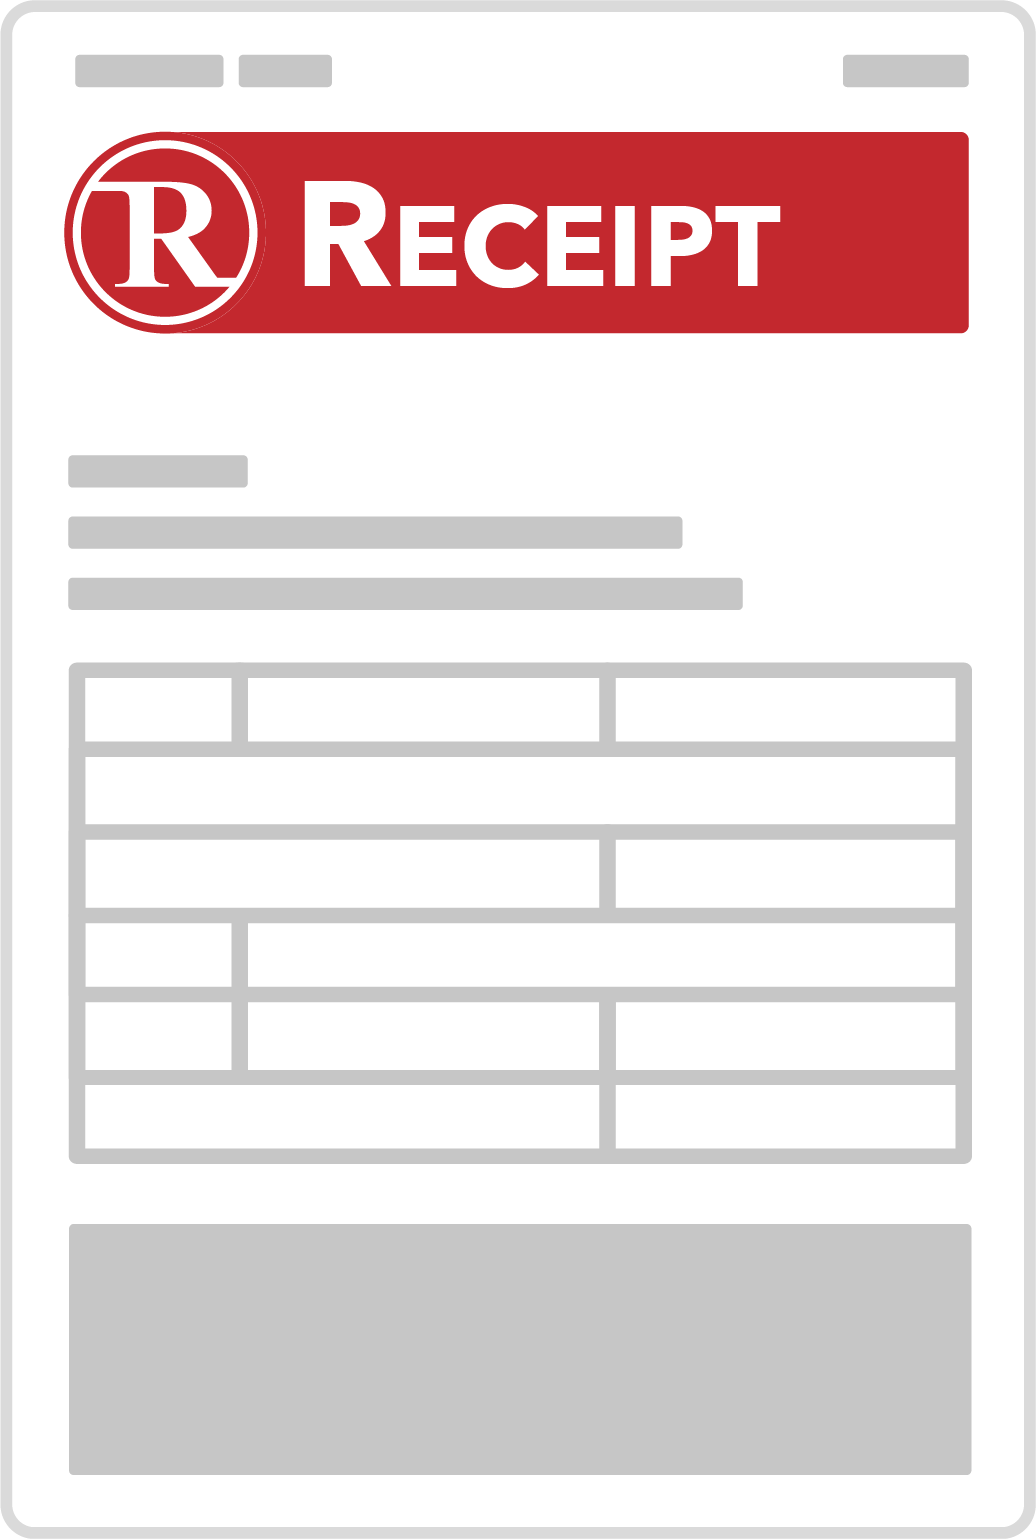 rmail receipt icon